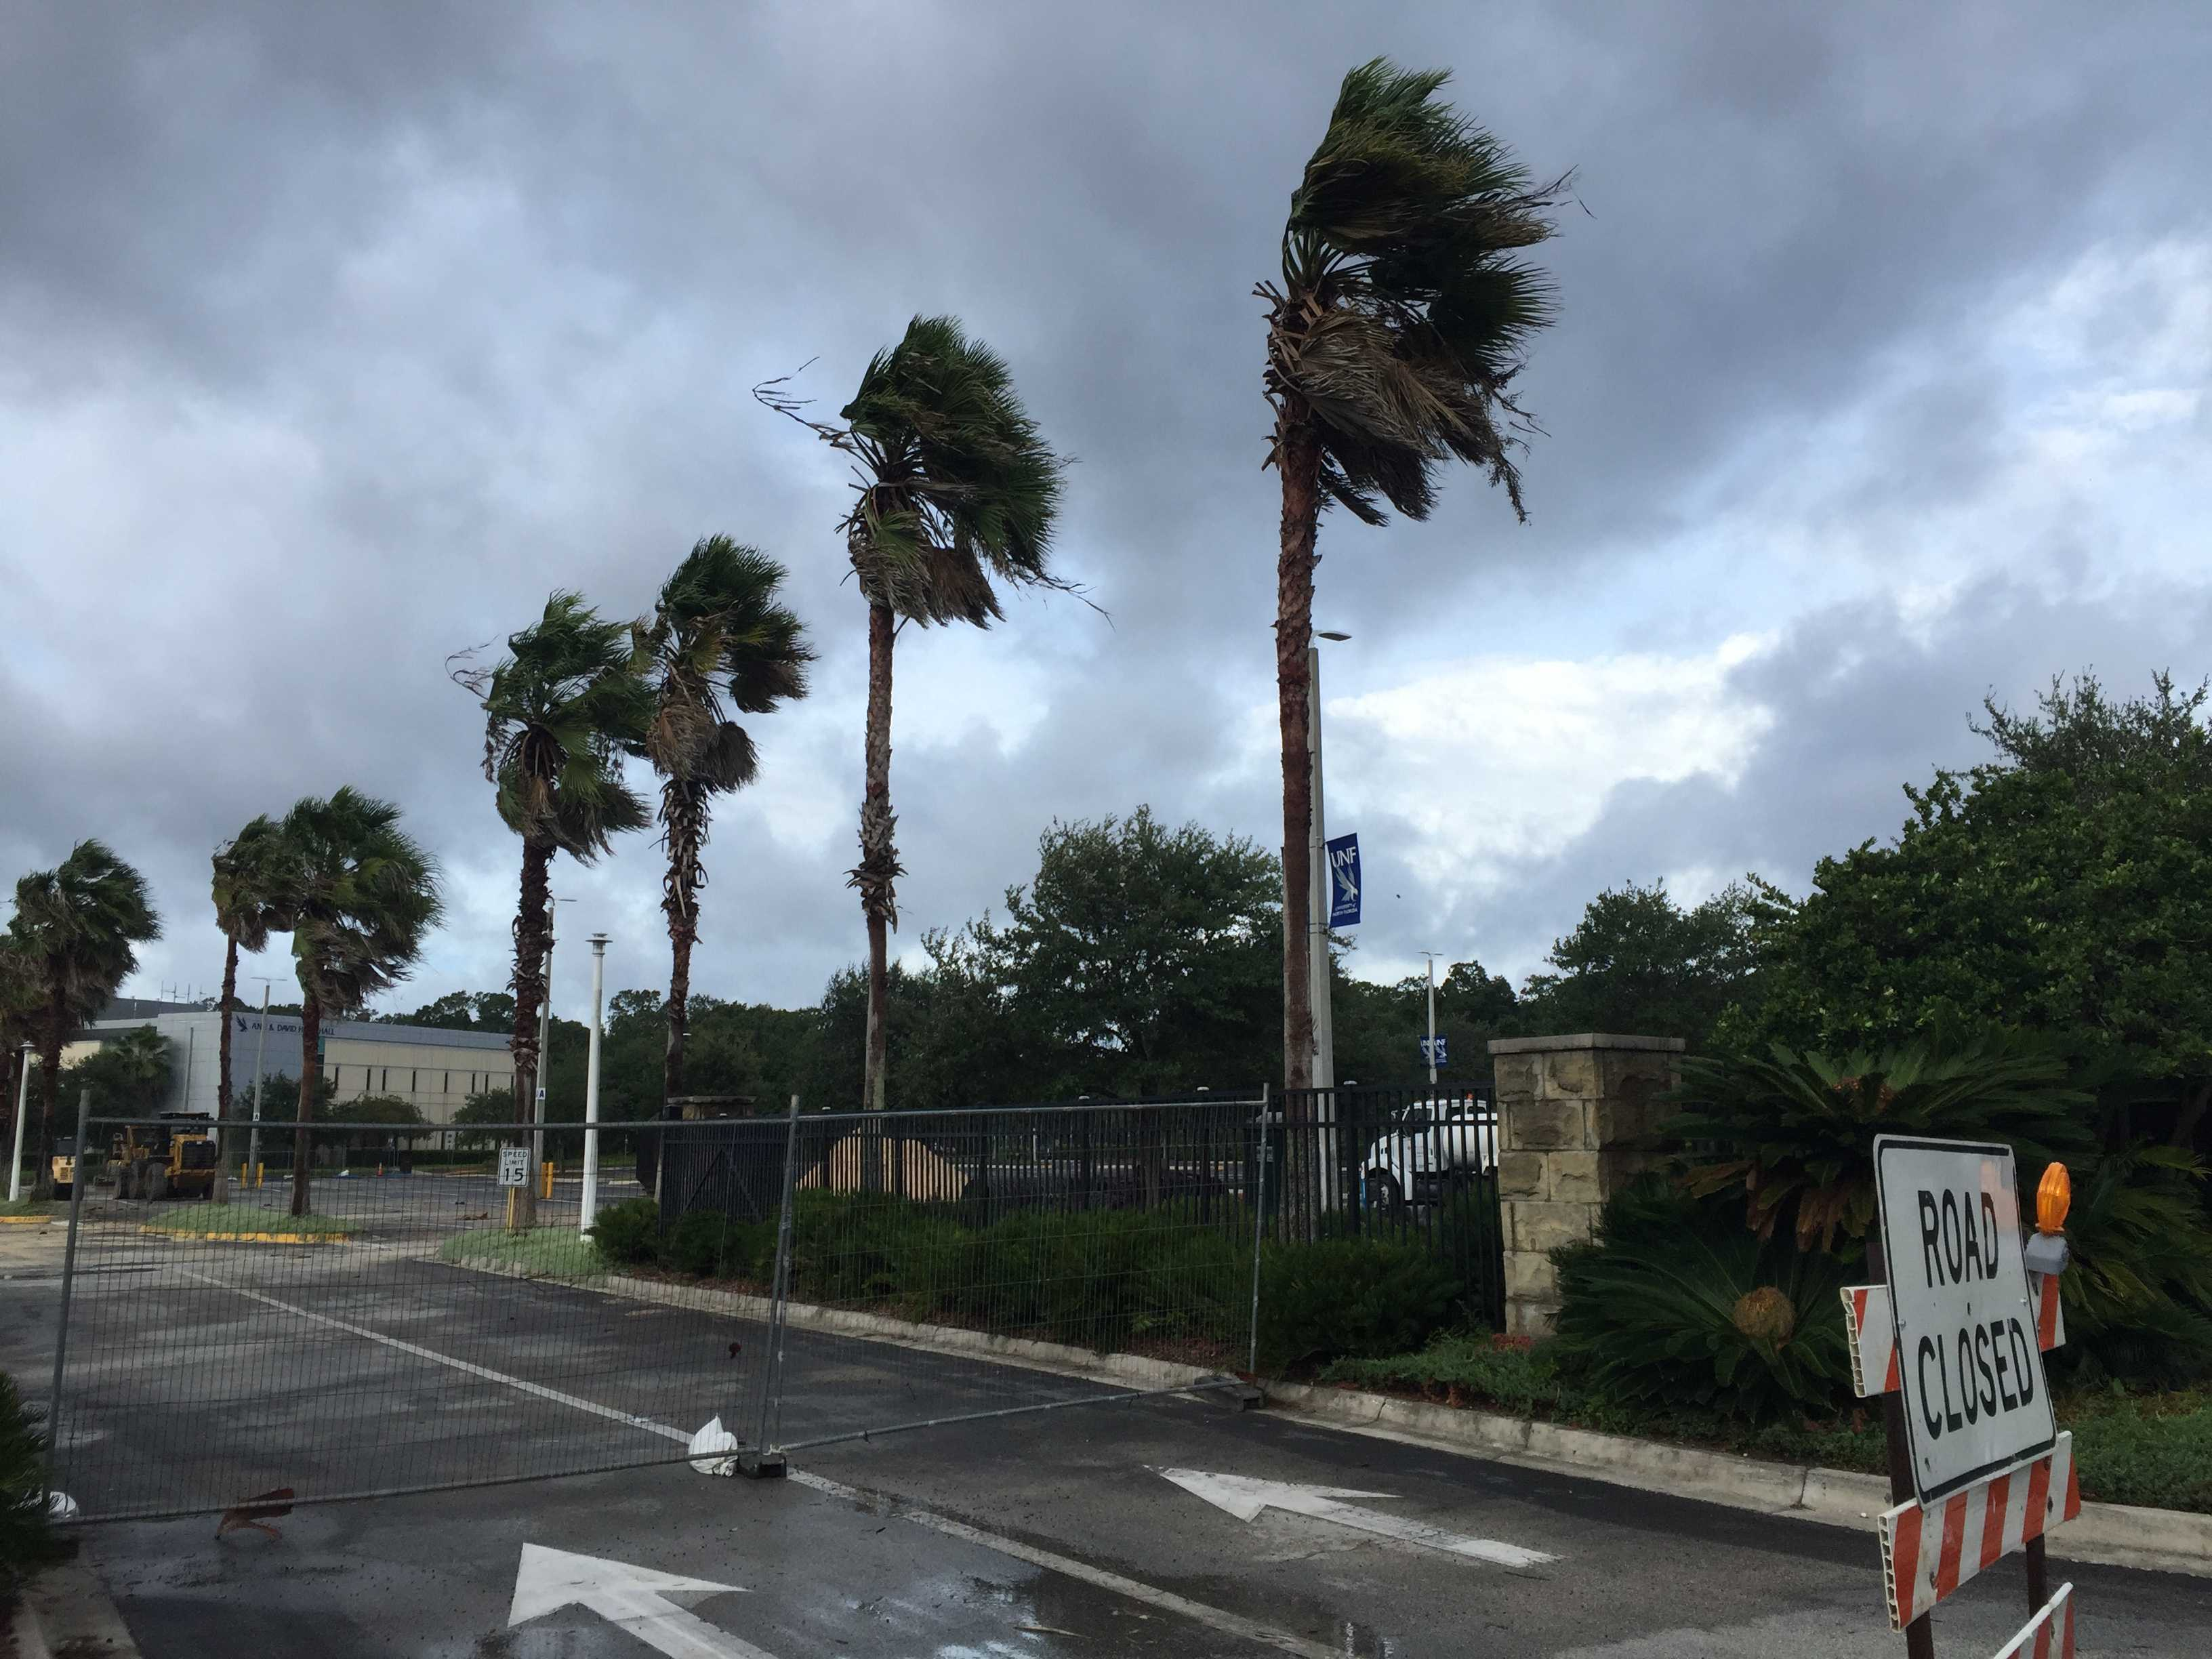 Irma brings increased risk of tornadoes and wind damage for Jacksonville, Shelters open